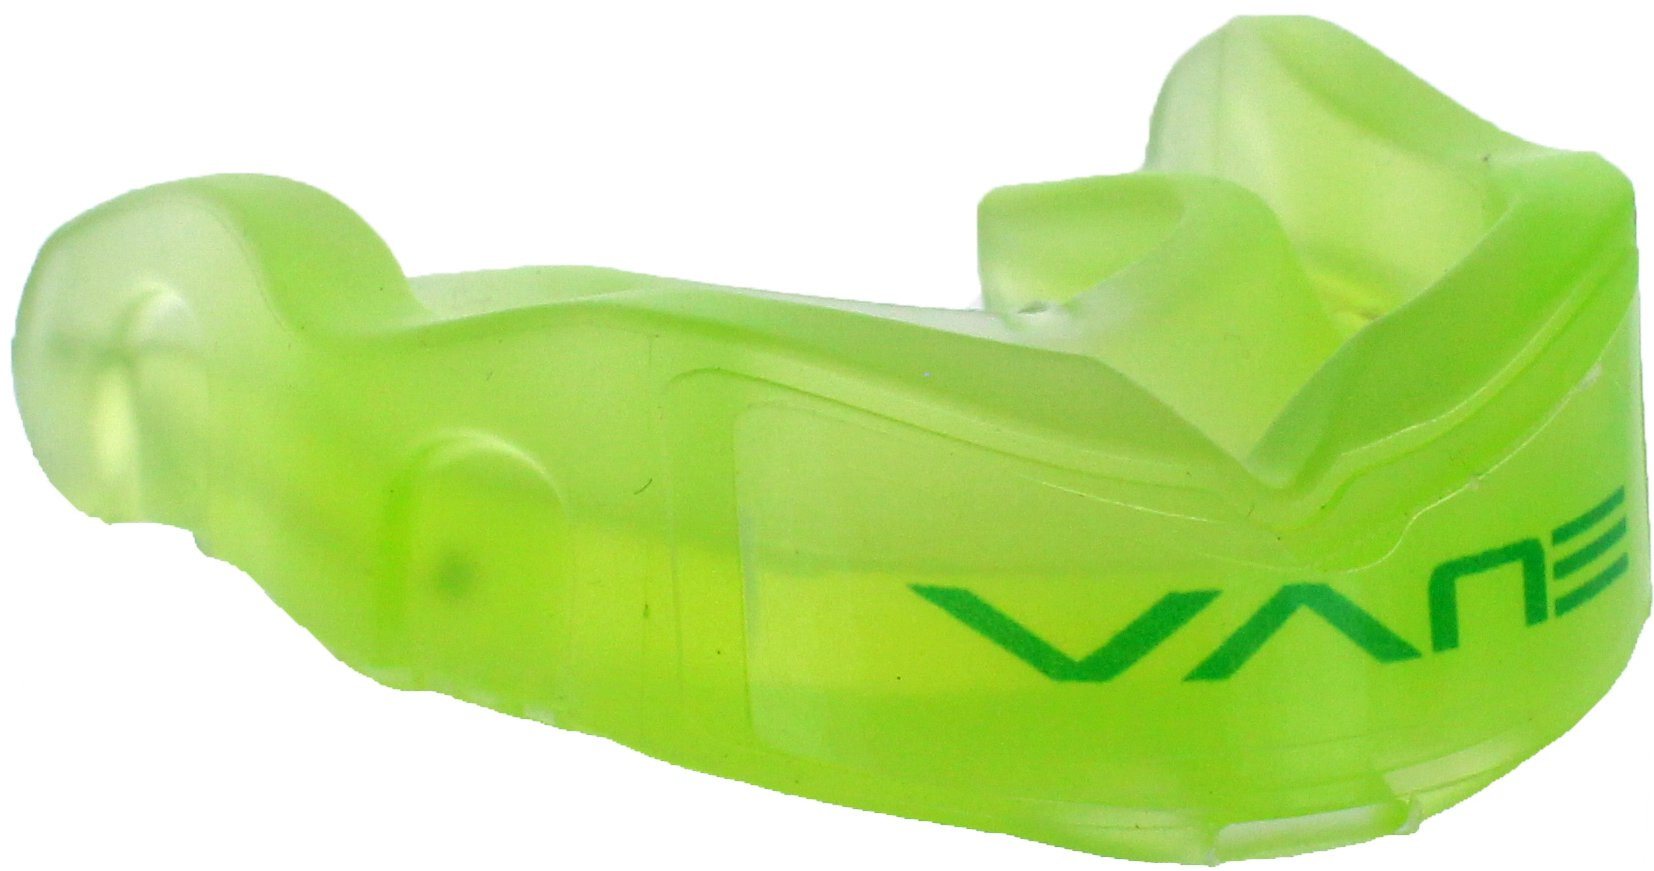 Vane Athletic Dental Grade Mouth Guard with G-Force Sensor Technology (Neon Green)